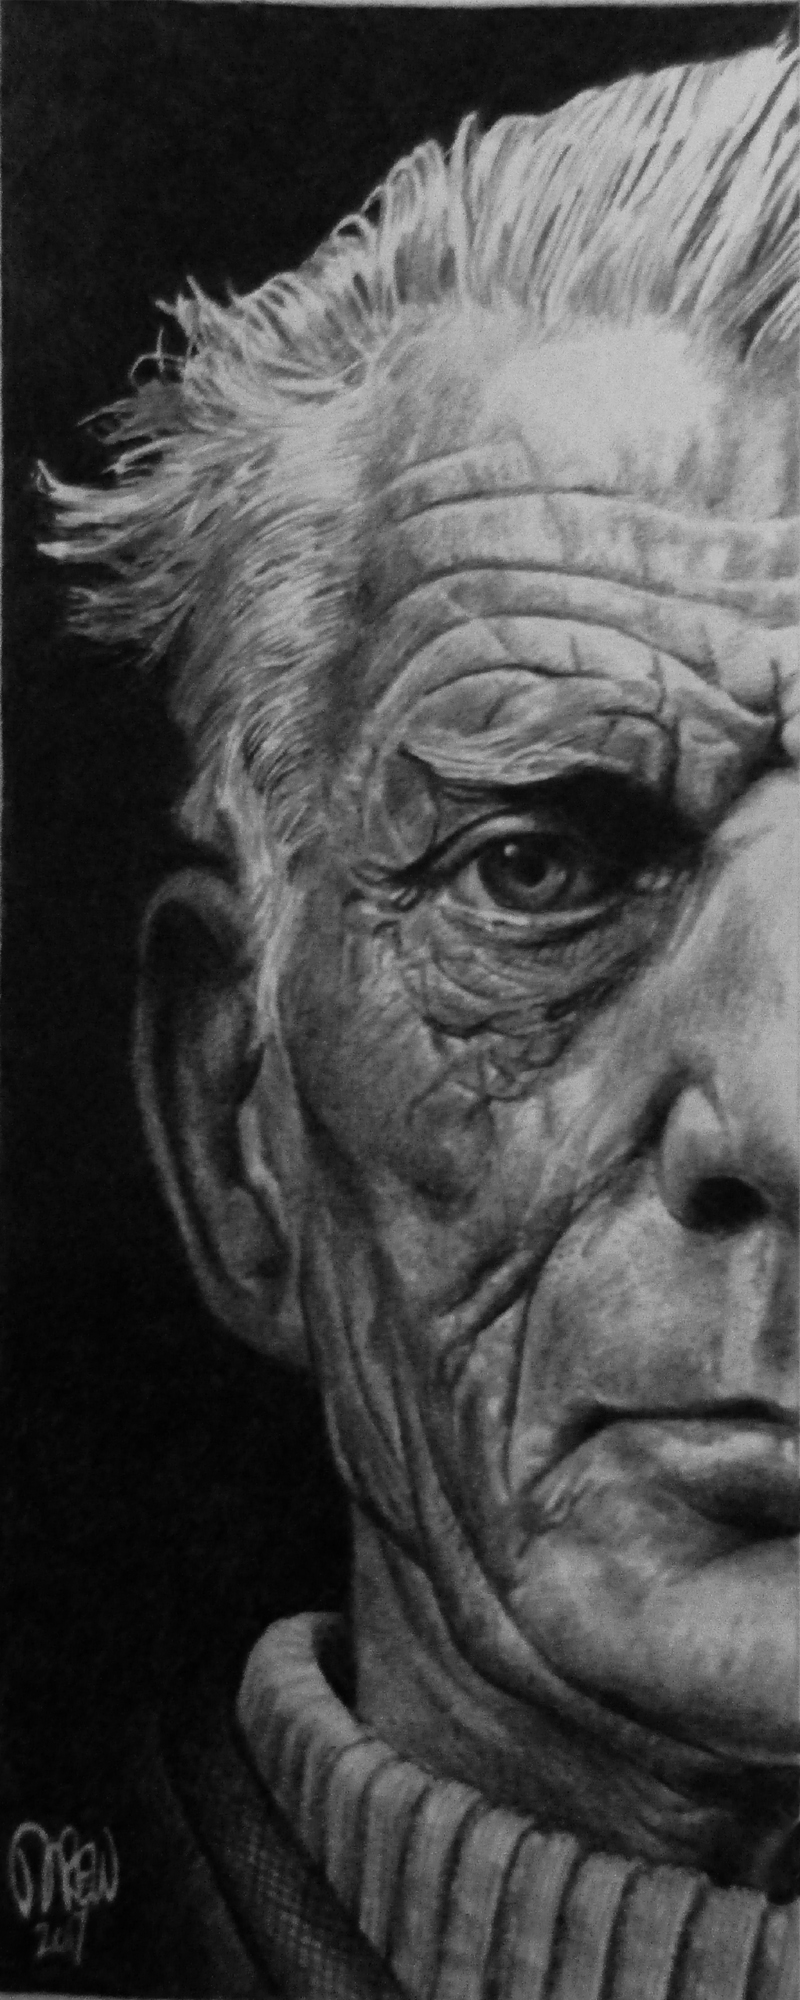 a biography of samuel beckett a playwright Samuel beckett biography - samuel beckett was an irish novelist, essayist, poet and playwright, born on 13th april 1906 in foxrock, dublin his father william frank beckett was a civil engineer and mother may barclay was a housewife.